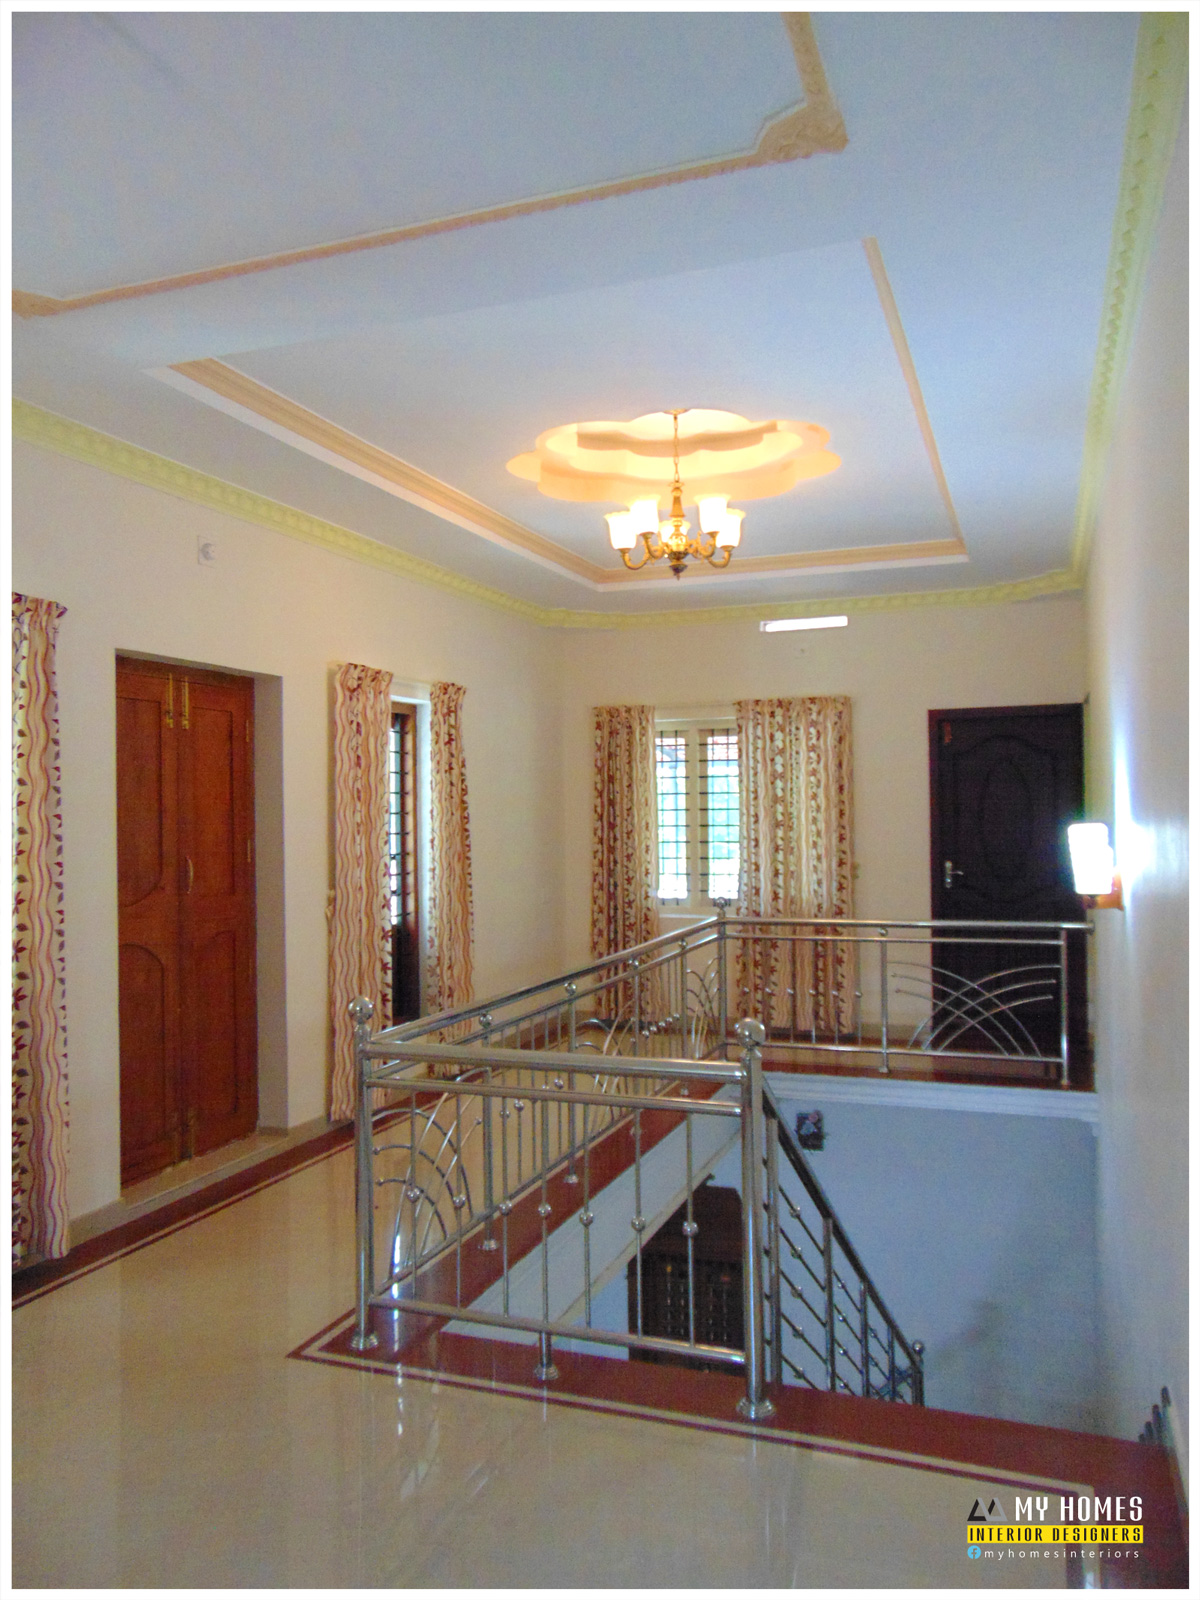 Kerala interior design ideas from designing company thrissur for House designs interior